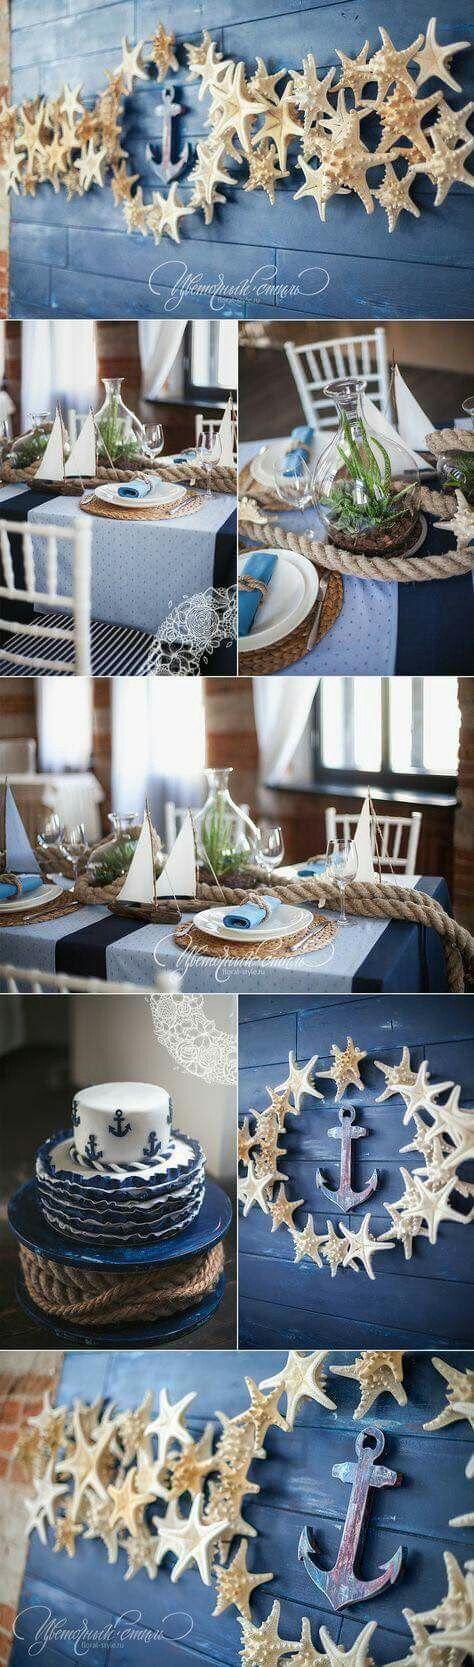 Gorgeous nautical beach wedding decoration ideas | I love these star fish and seashell inspired beach wedding decor. Perfect for a seaside or coastal wedding. SAVE to your wedding planning board>>